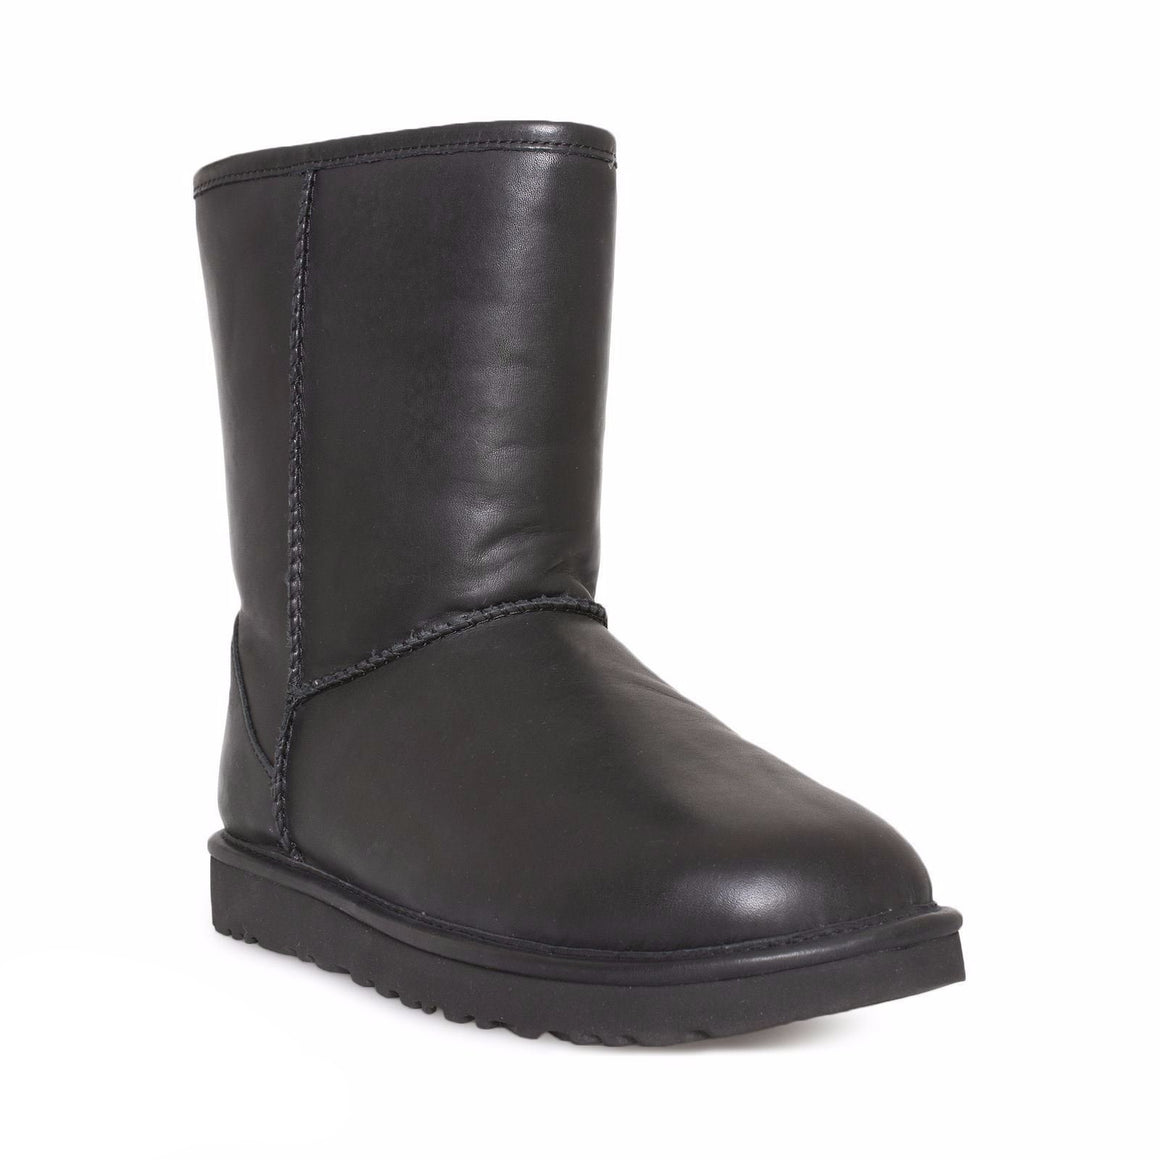 UGG Classic Short Cashmere Black Boots